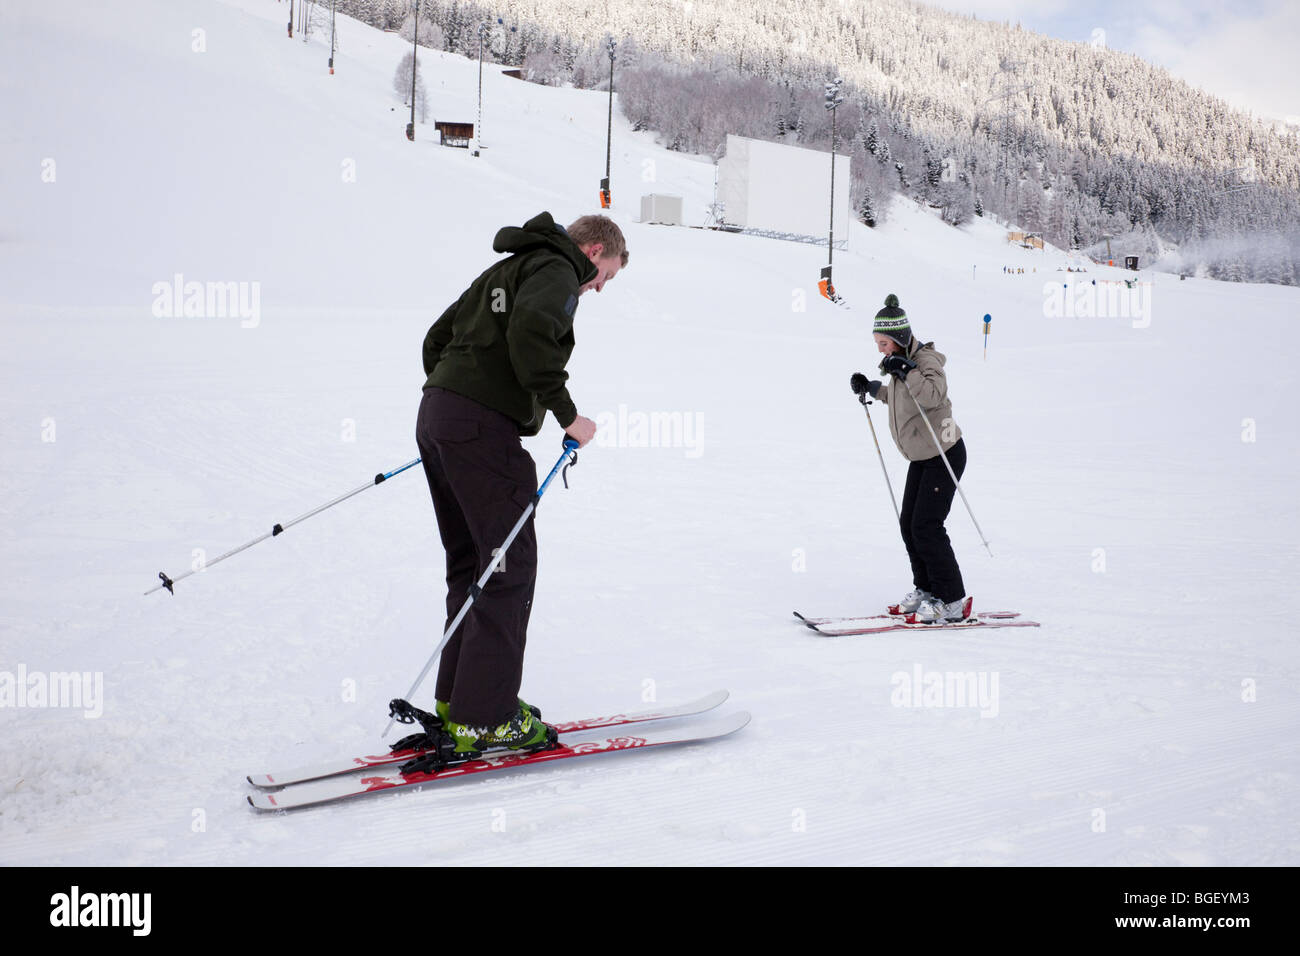 Novice skier learning to ski with personal instructor on snow covered nursery slopes in Austrian Alps. St Anton - Stock Image